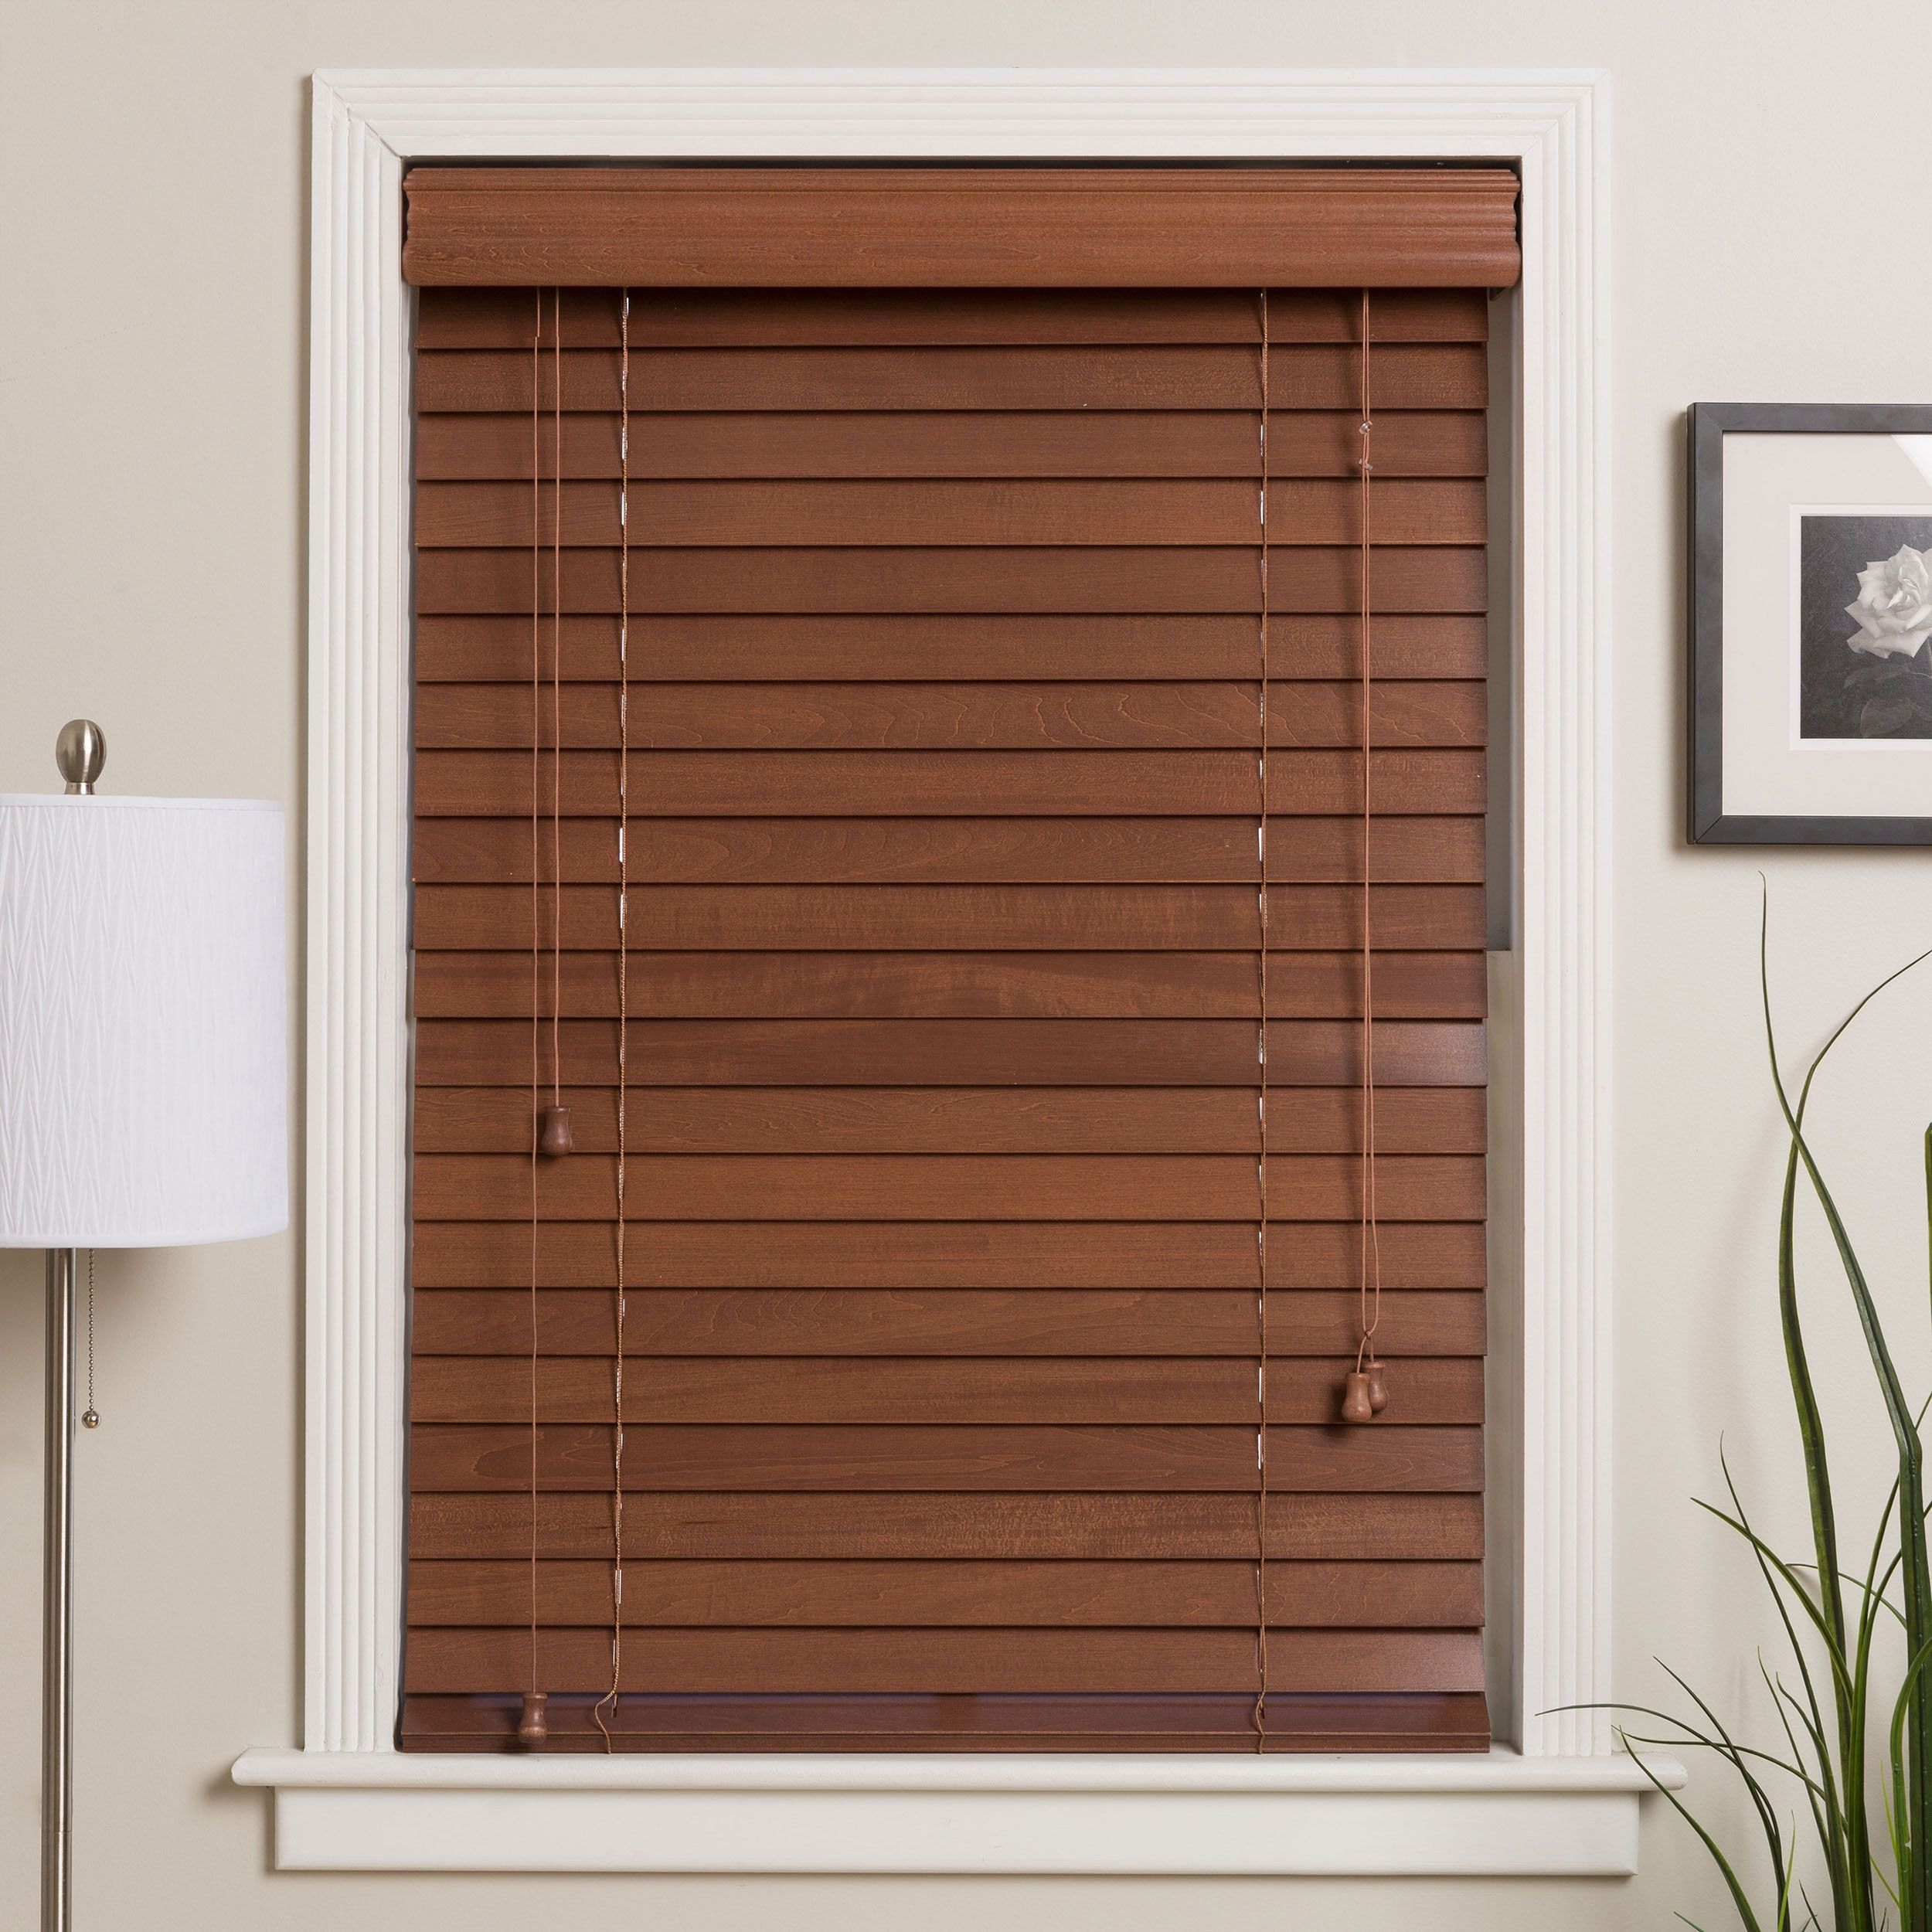 Window coverings over blinds  arlo blinds customized inch real window blinds  window